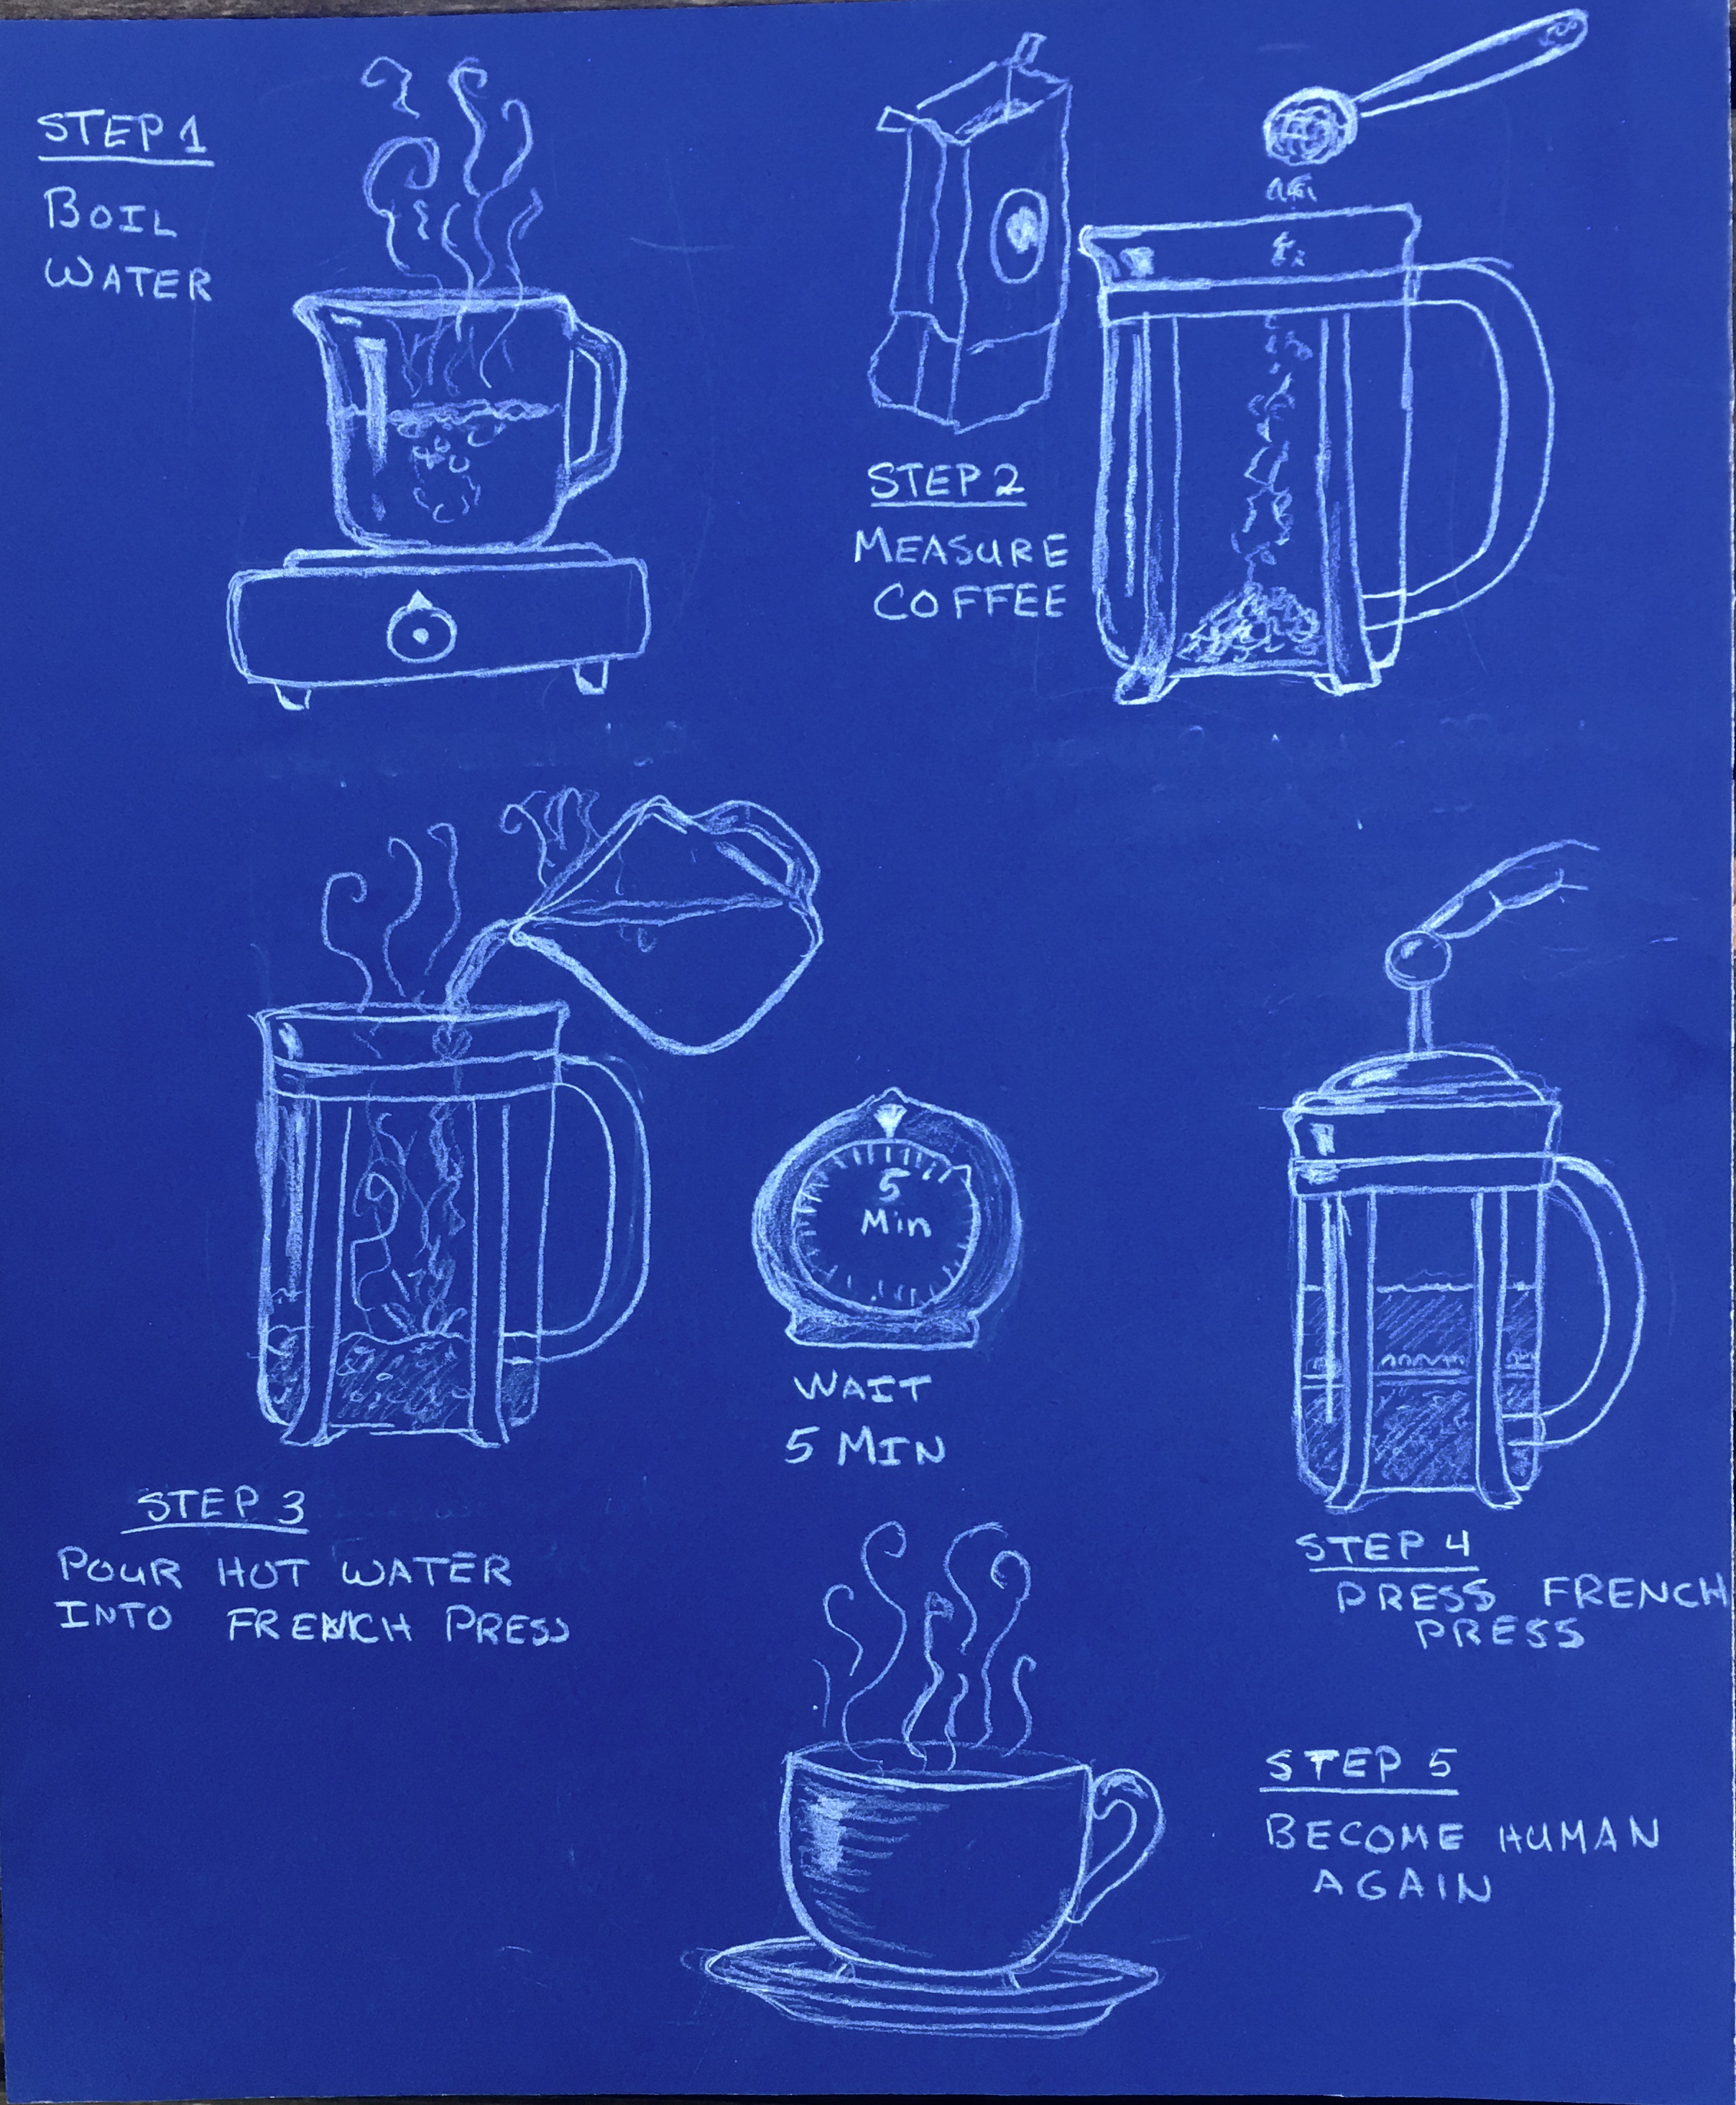 Procedure diagram for making coffee with a French press. Made with colored pencil on blue paper.